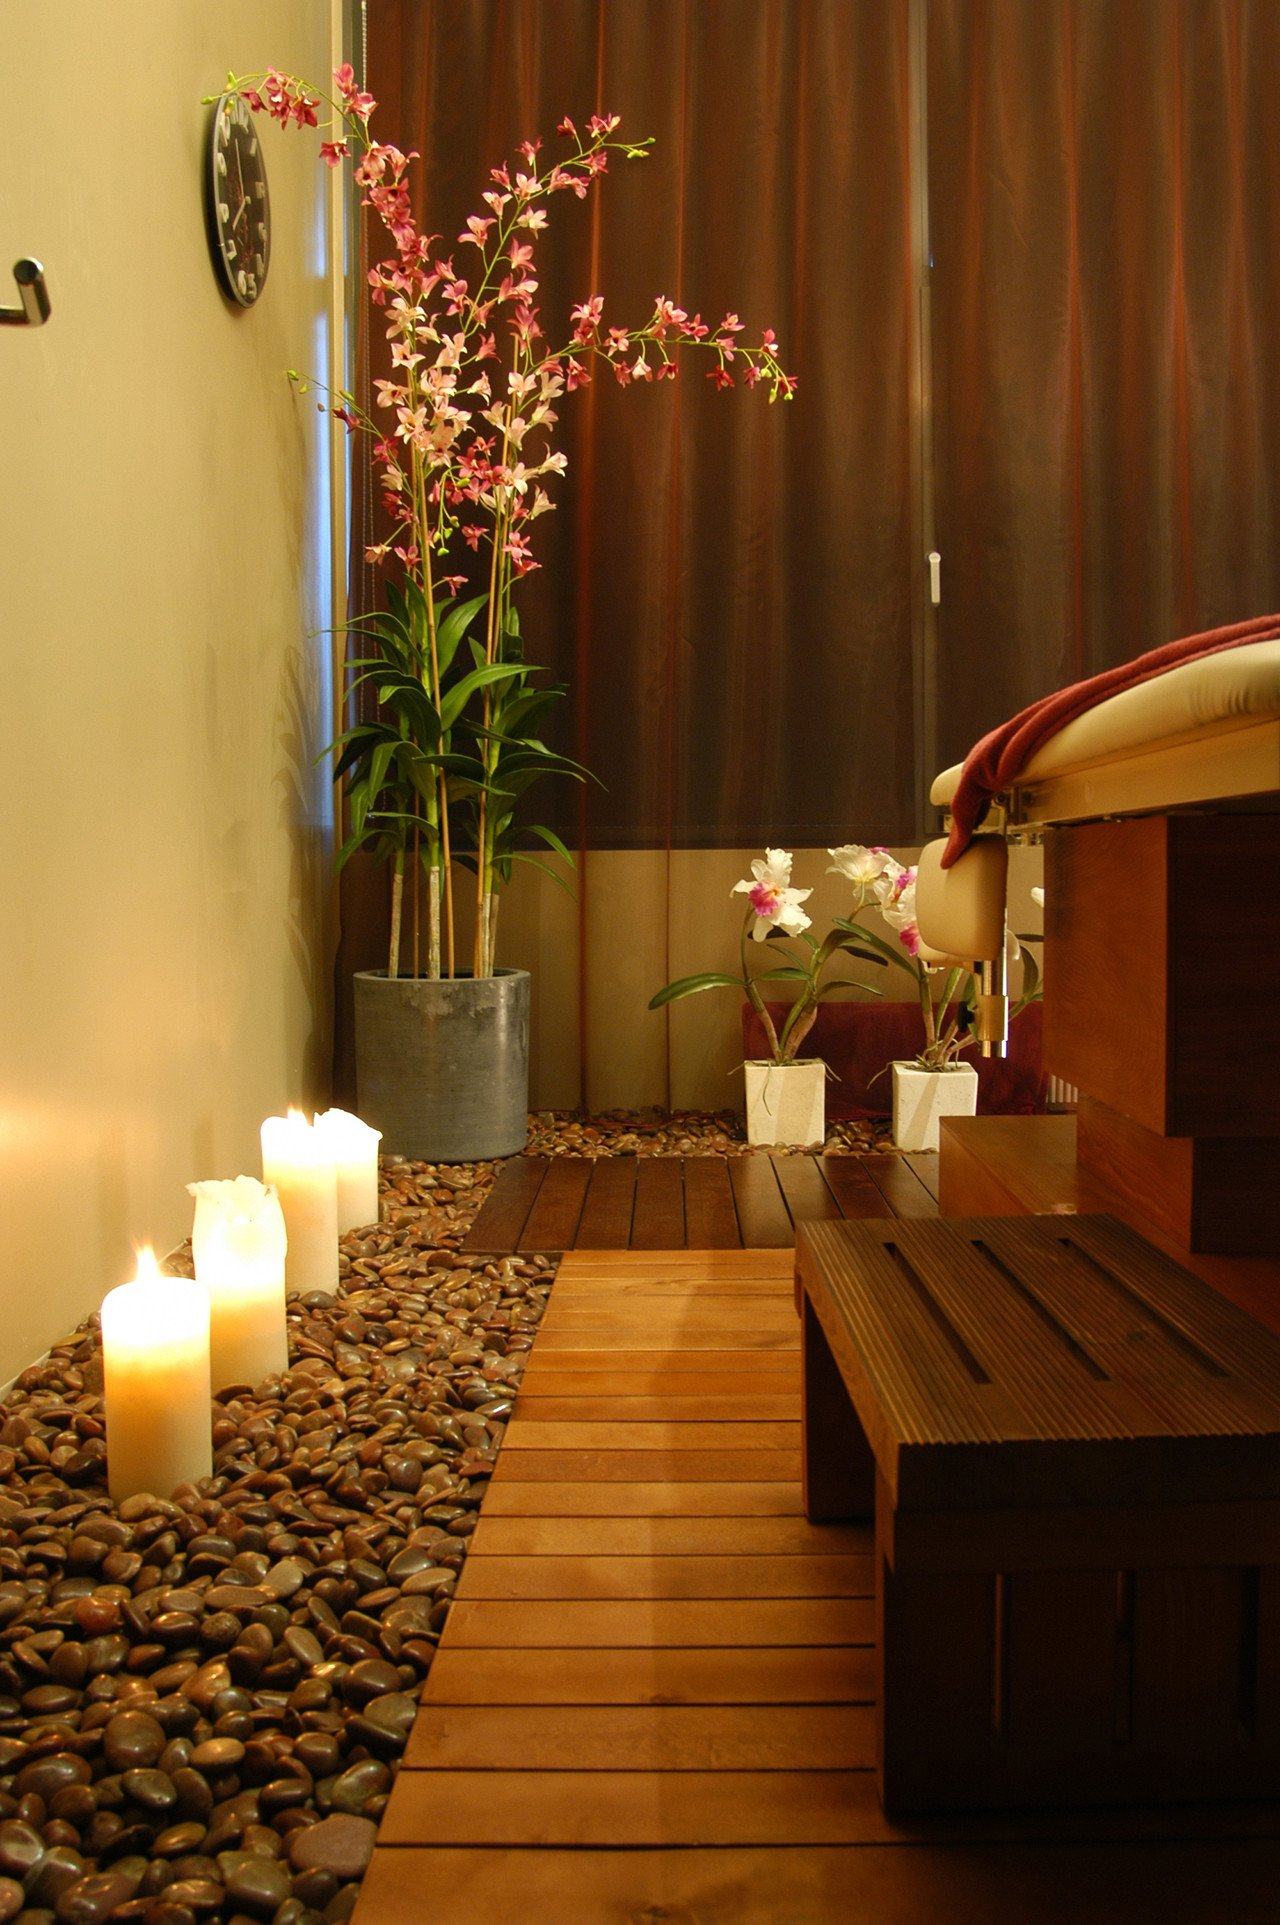 Spa Decor Ideas for Home Beautiful 50 Best Meditation Room Ideas that Will Improve Your Life